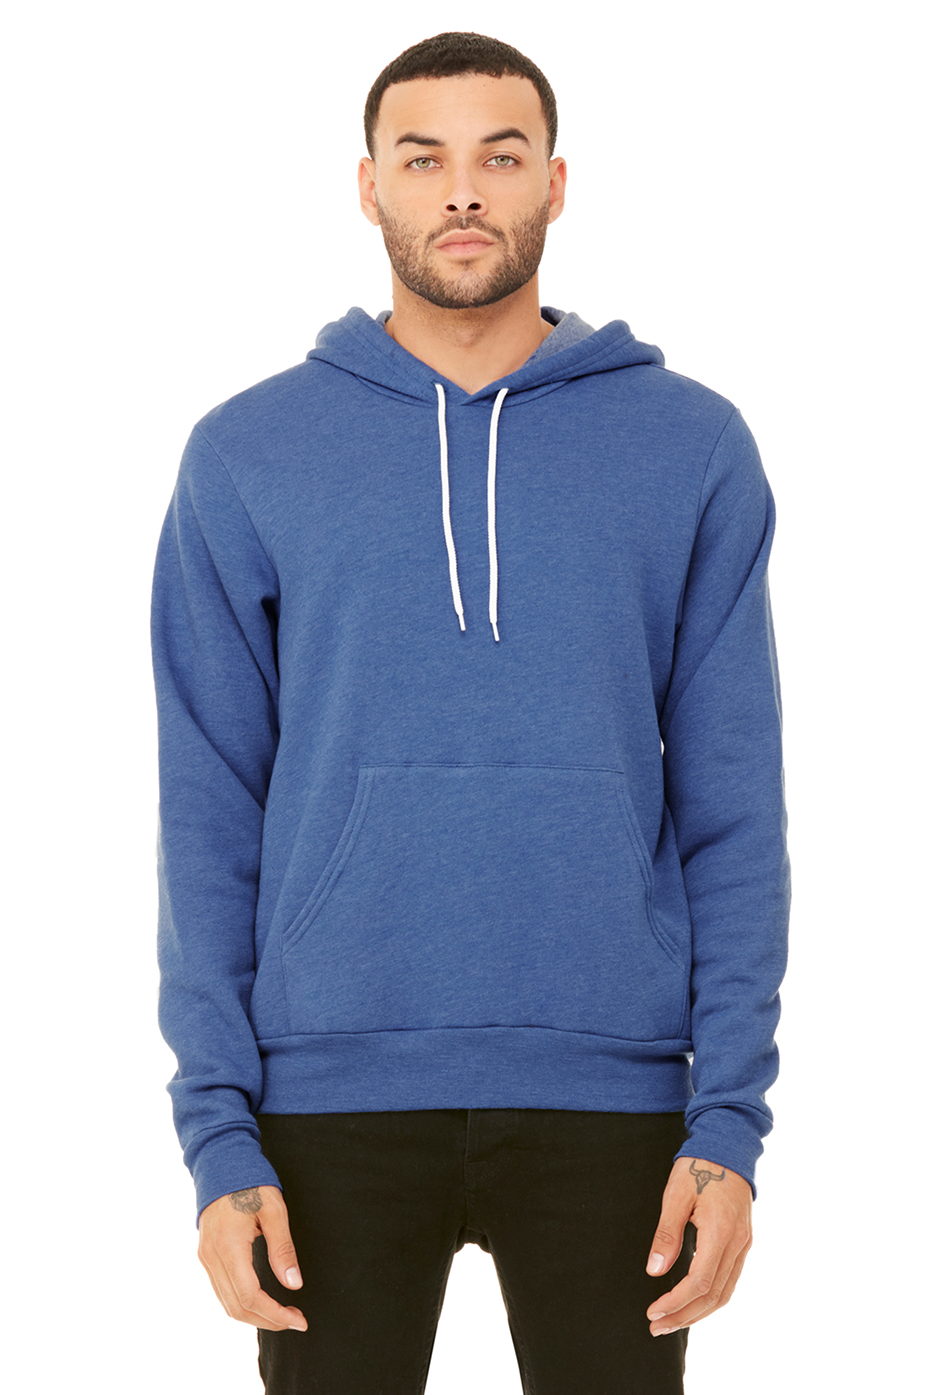 Unisex Sponge Fleece Pullover Hoodie | Bella-Canvas